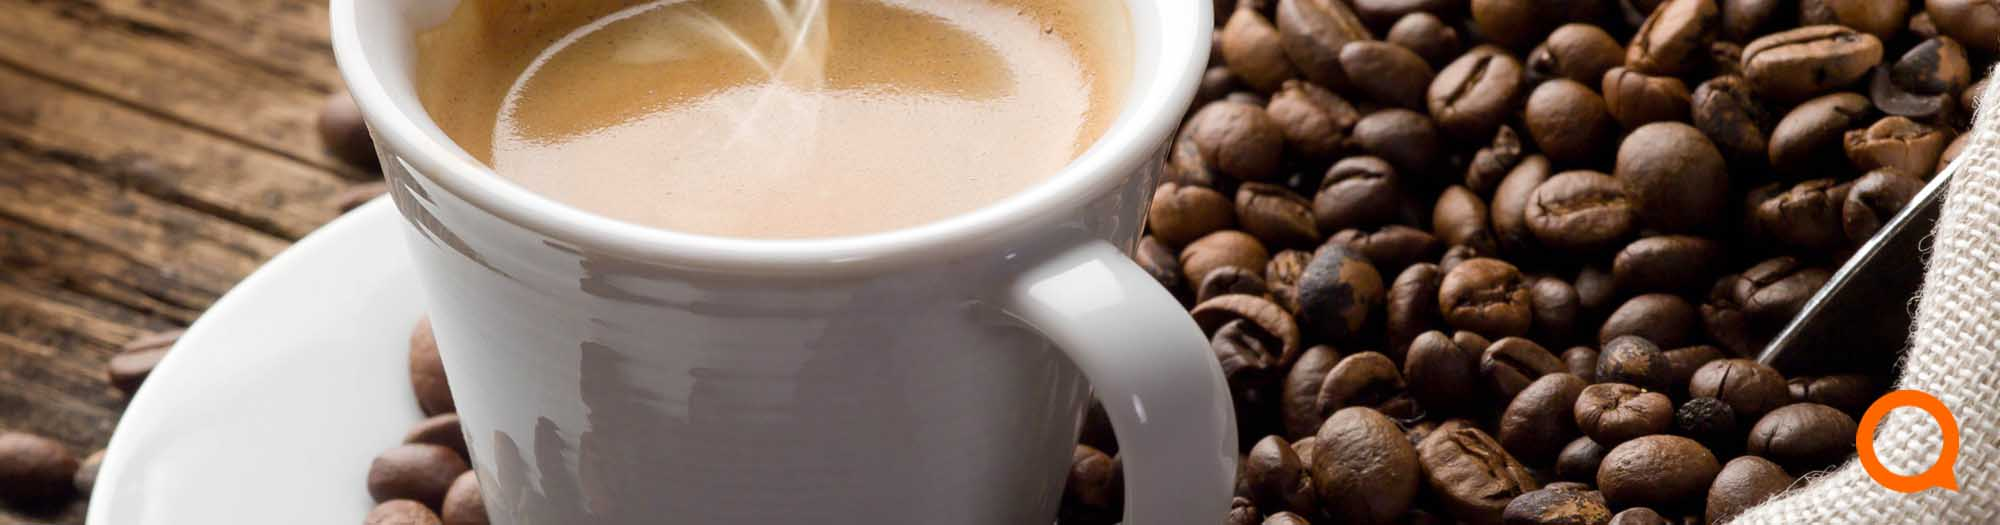 Koffie & thee accessoires